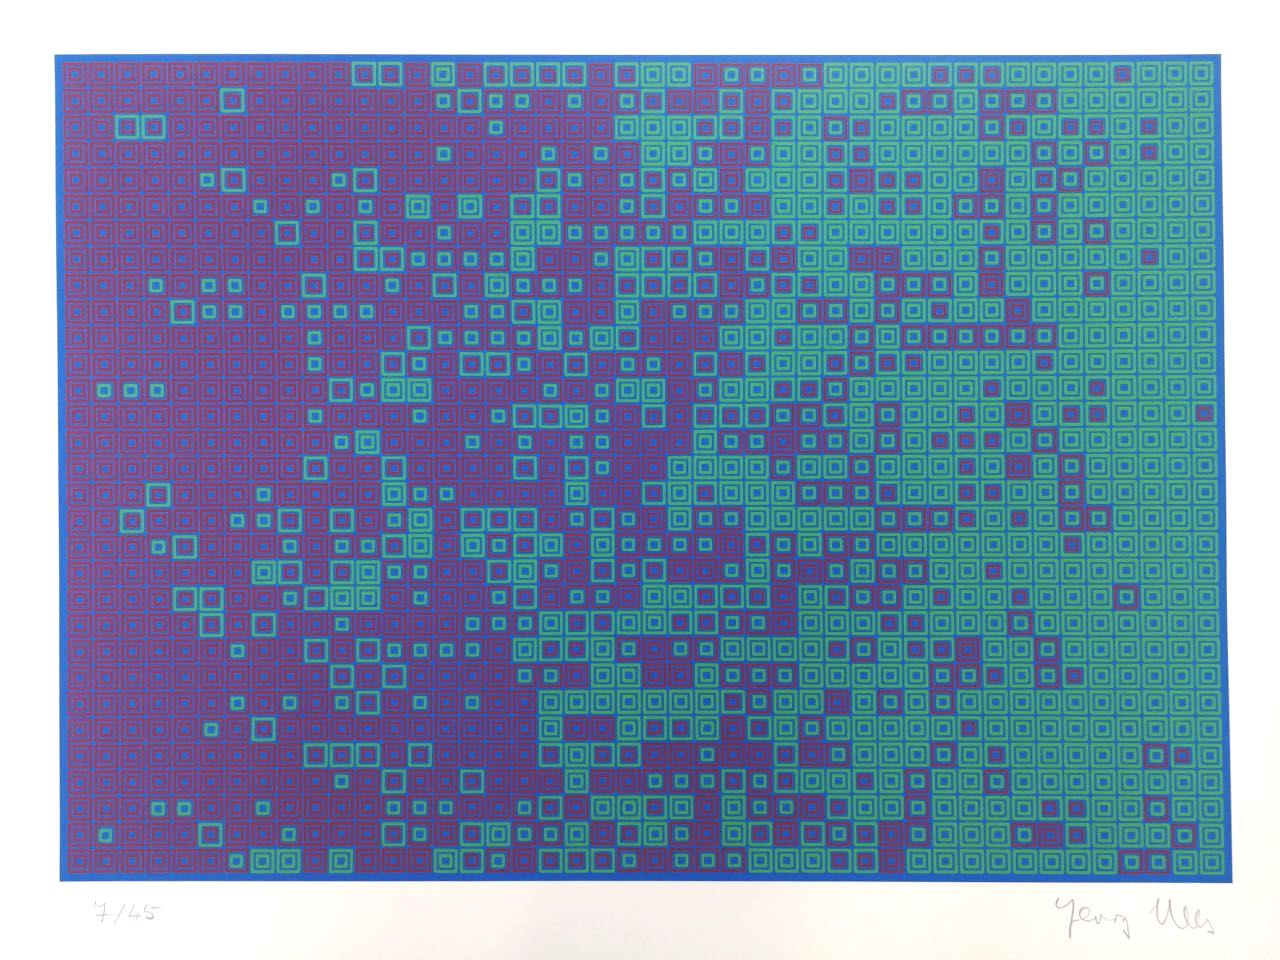 Georg Nees, Untitled, silkscreen, 38 x 50 cm (size of paper), edition of 45, 1972.